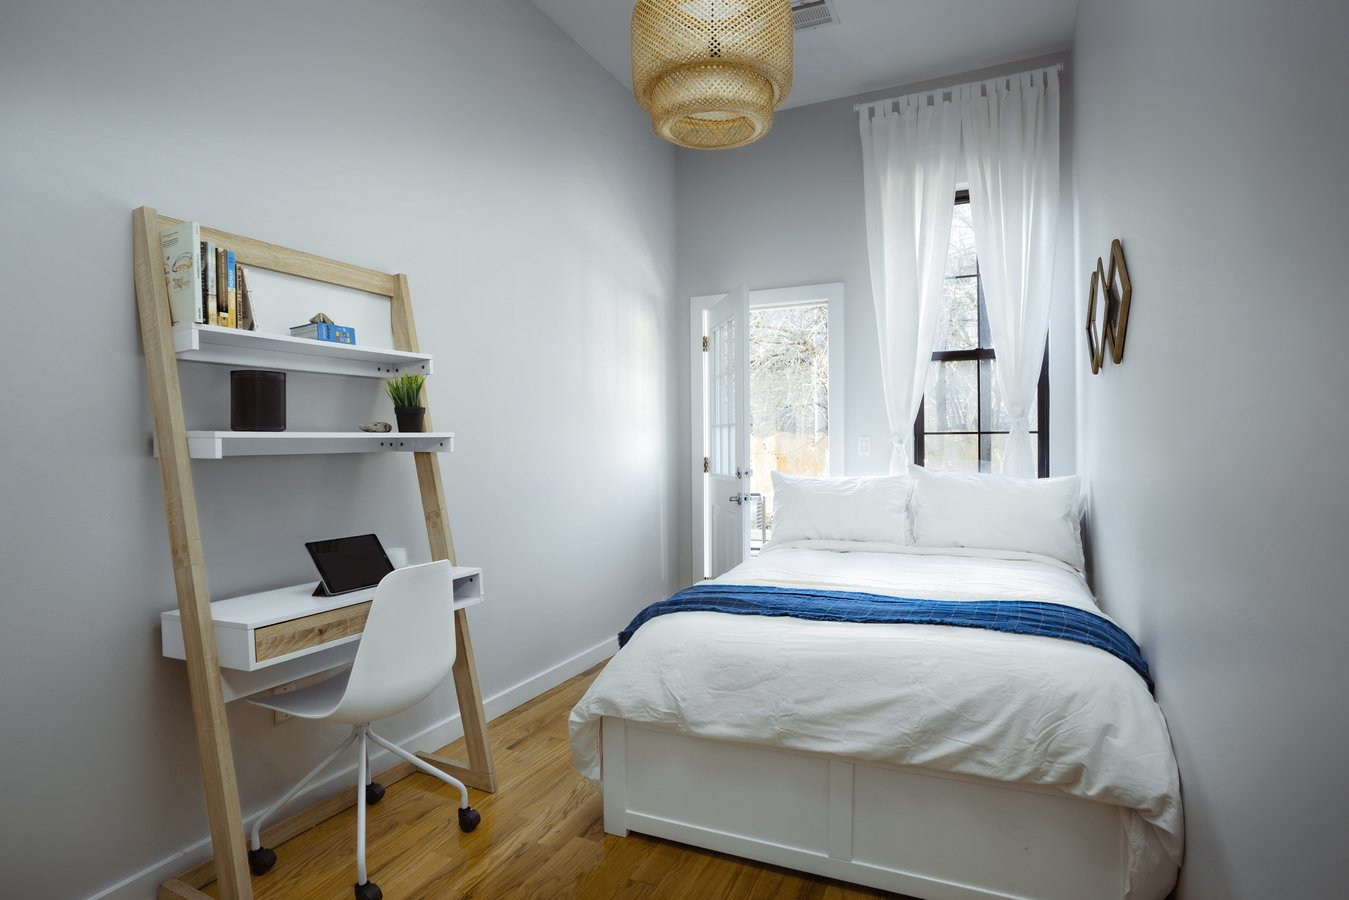 1 Bedroom 1 Bathroom Apartment for rent at Private Furnished Bedroom In Shared Apartment. Beautiful 5 Bed 2 Bath, Flexible Lease in New York, NY